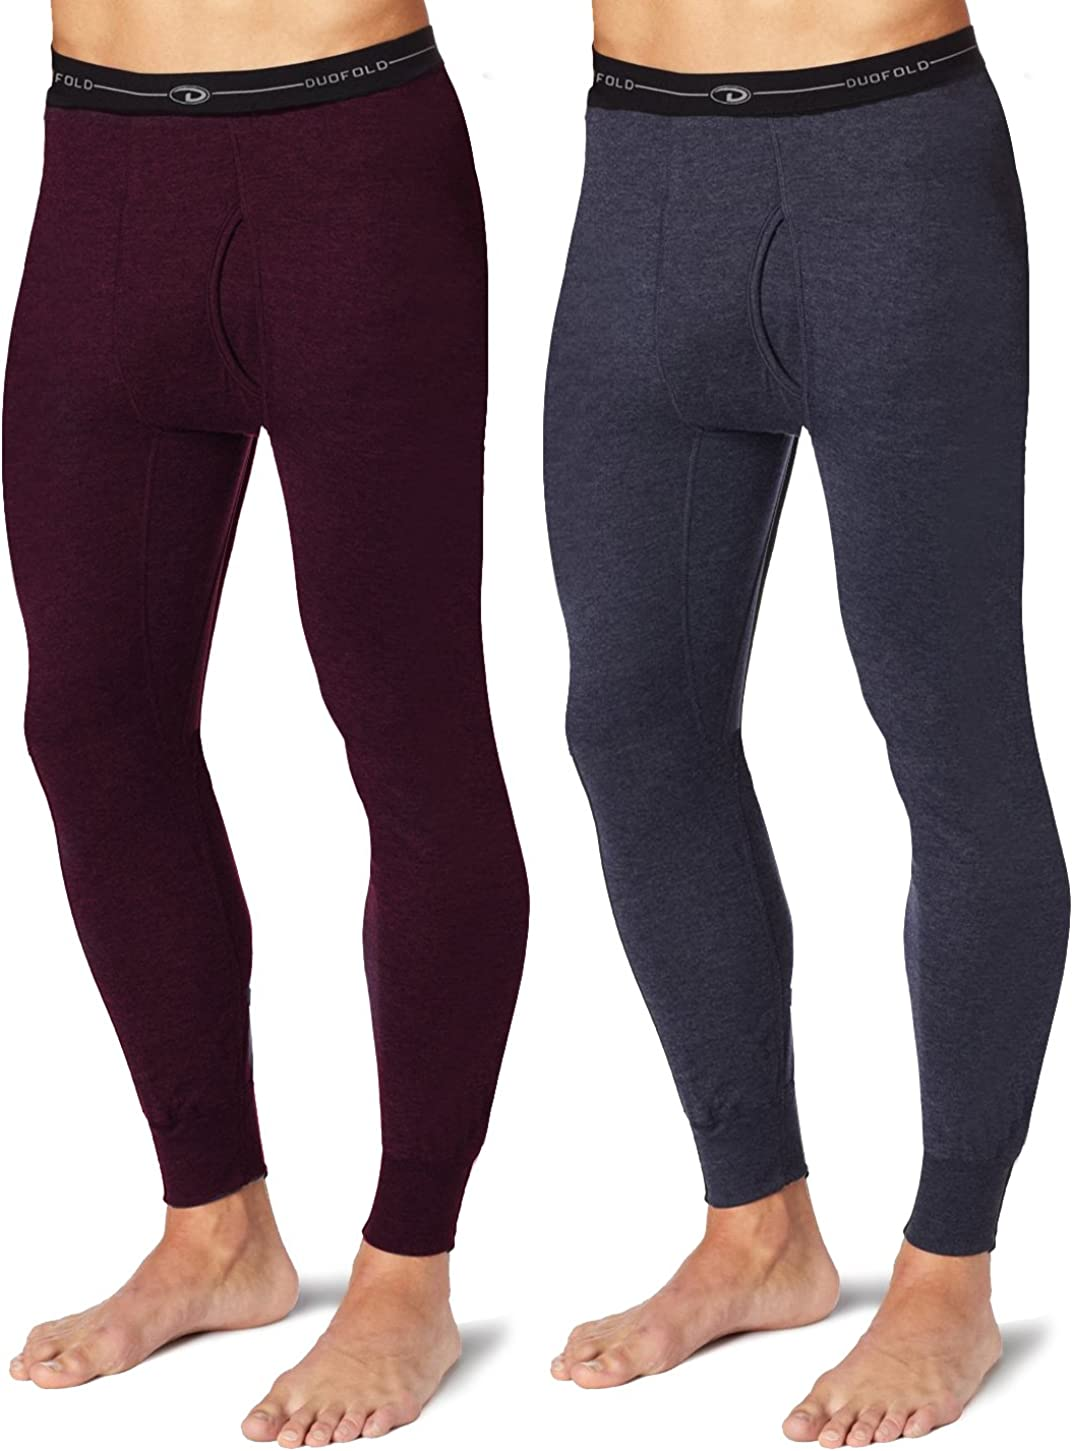 Duofold KMW2 Men's Mid Weight Wicking Thermal Pant 1 Bordeaux Red + 1 Navy